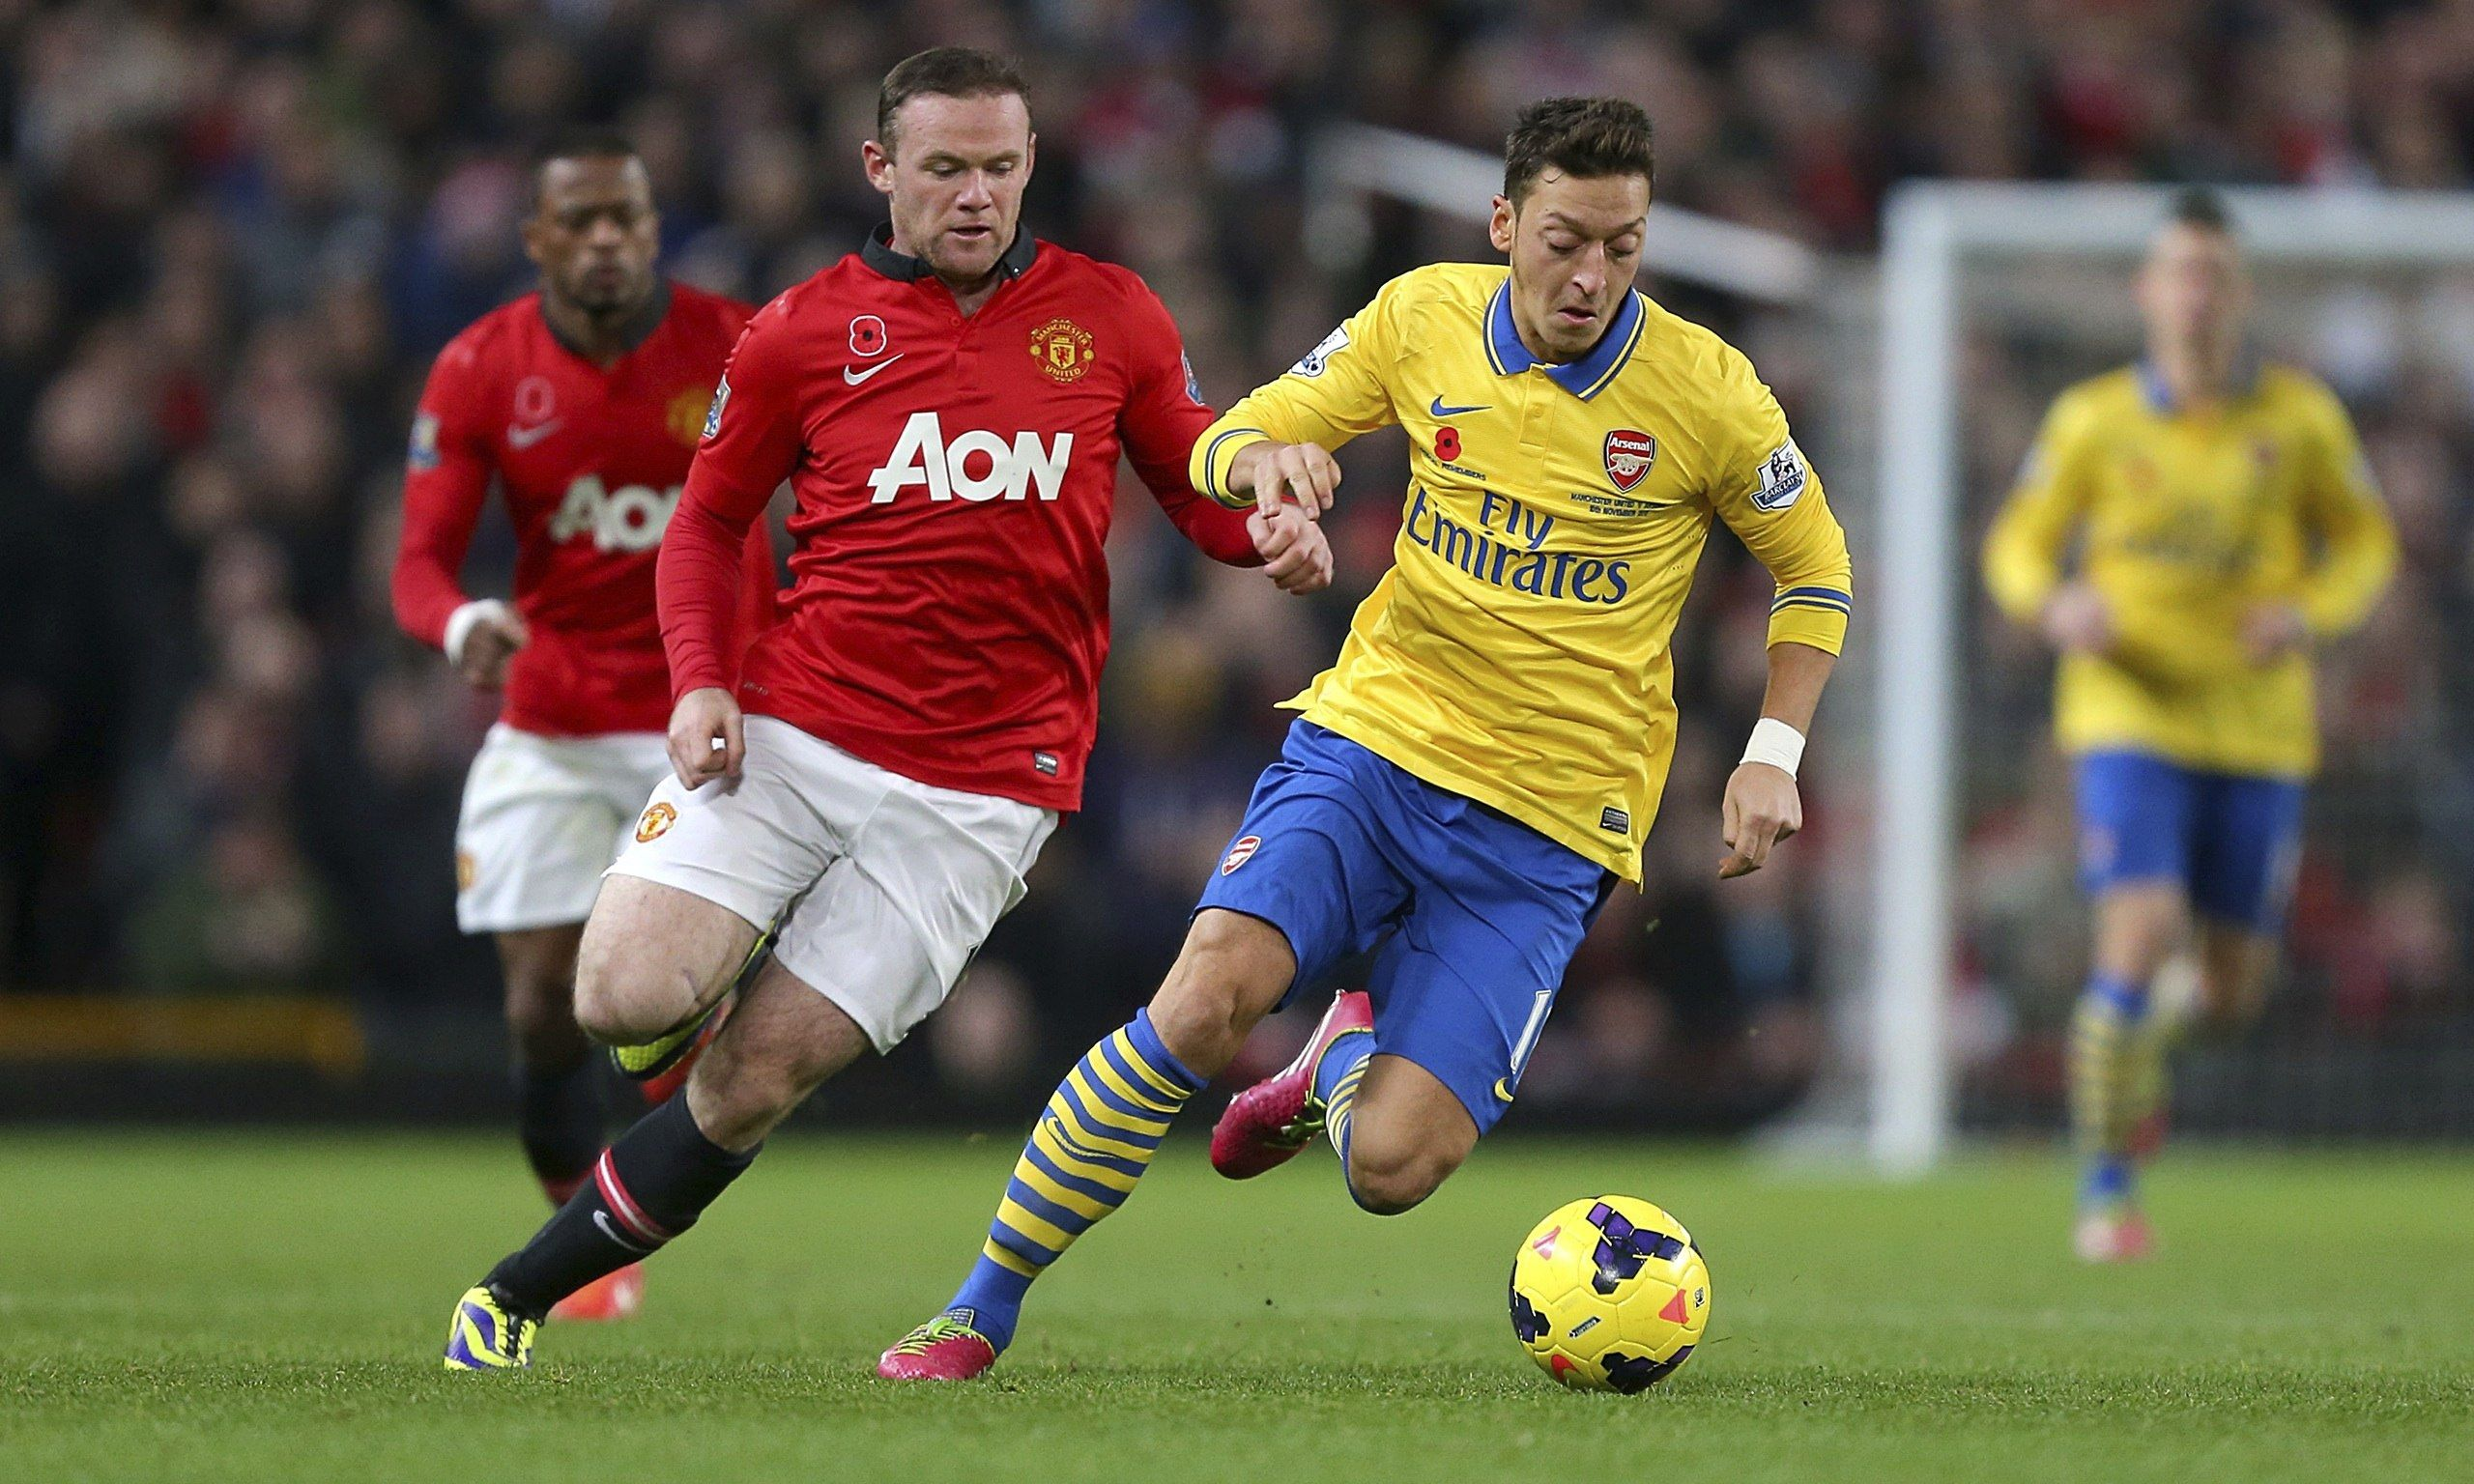 Manchester United vs Arsenal 02/24/2015 FA Cup Preview